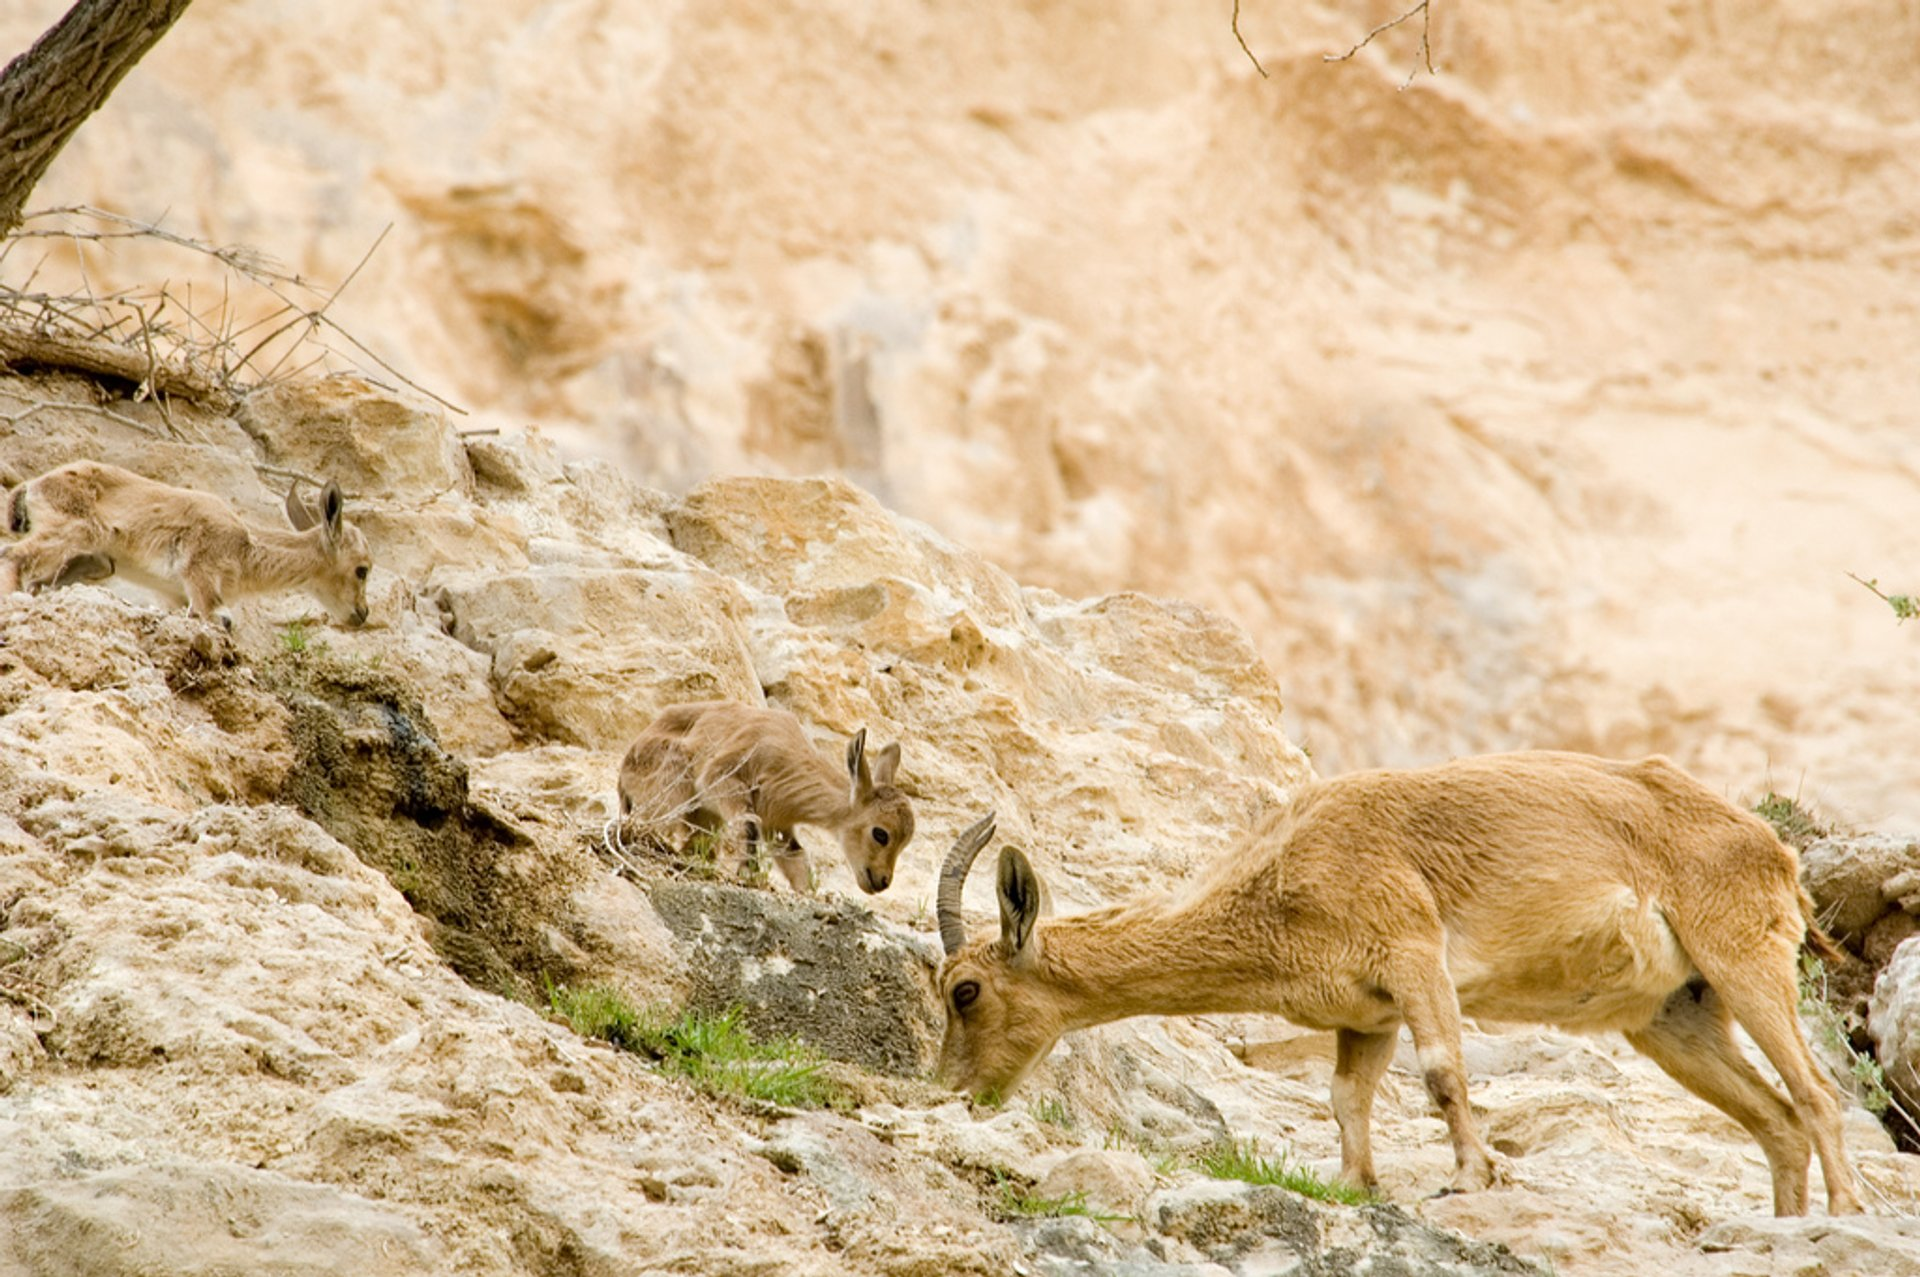 Nubian Ibex Baby Mountain Goats in Israel - Best Season 2020